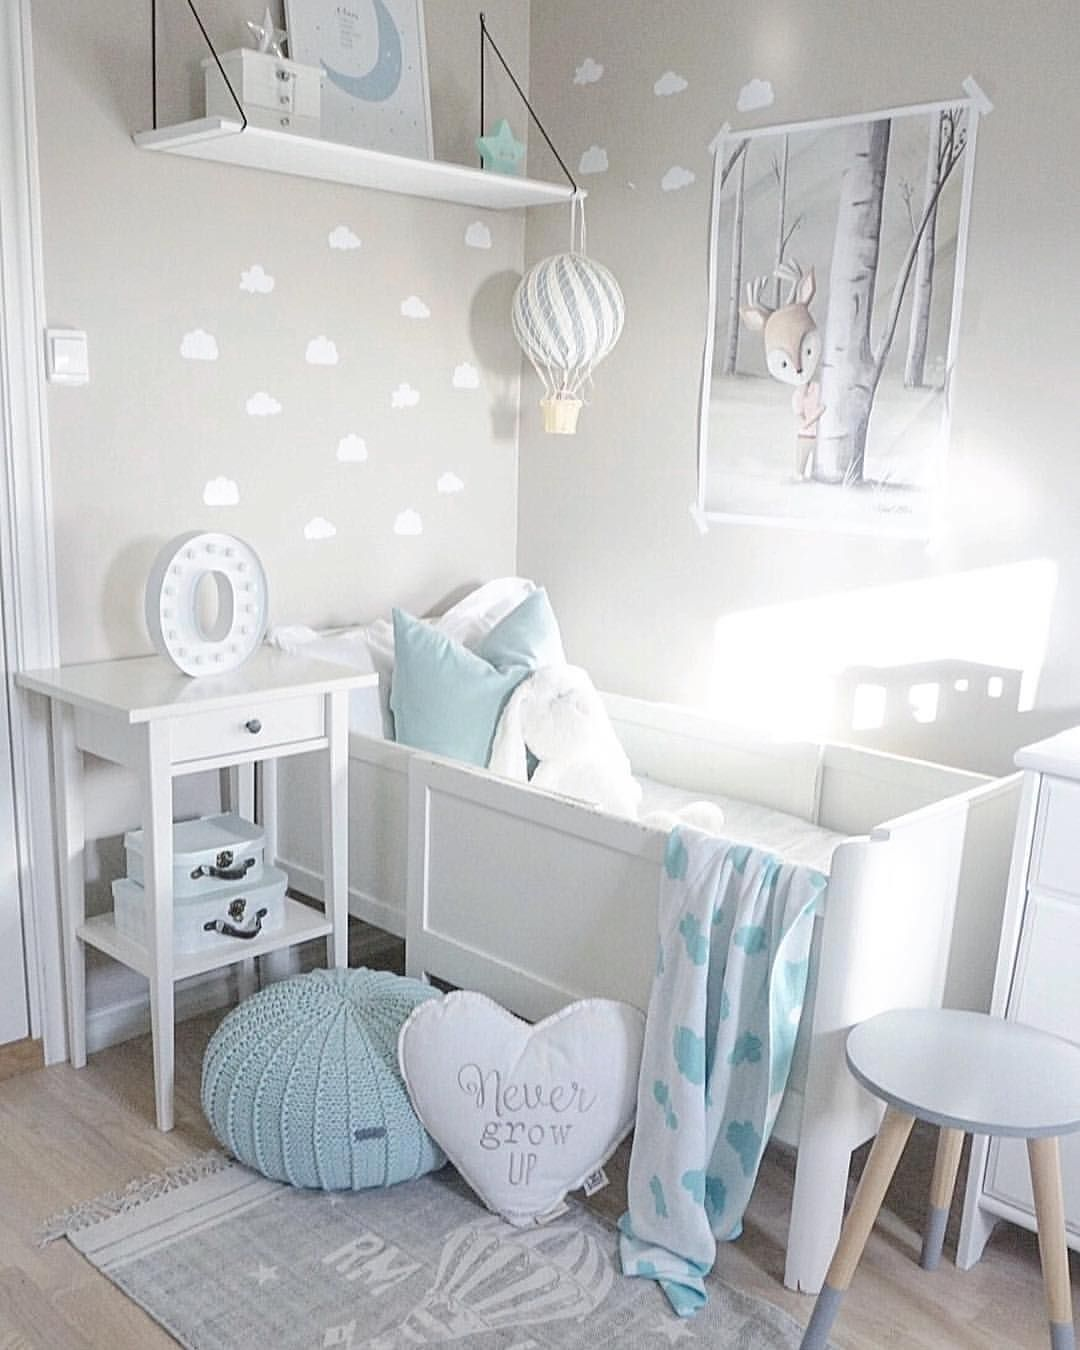 Inspiration From Instagram Light Grey And Blue Nursery Decor